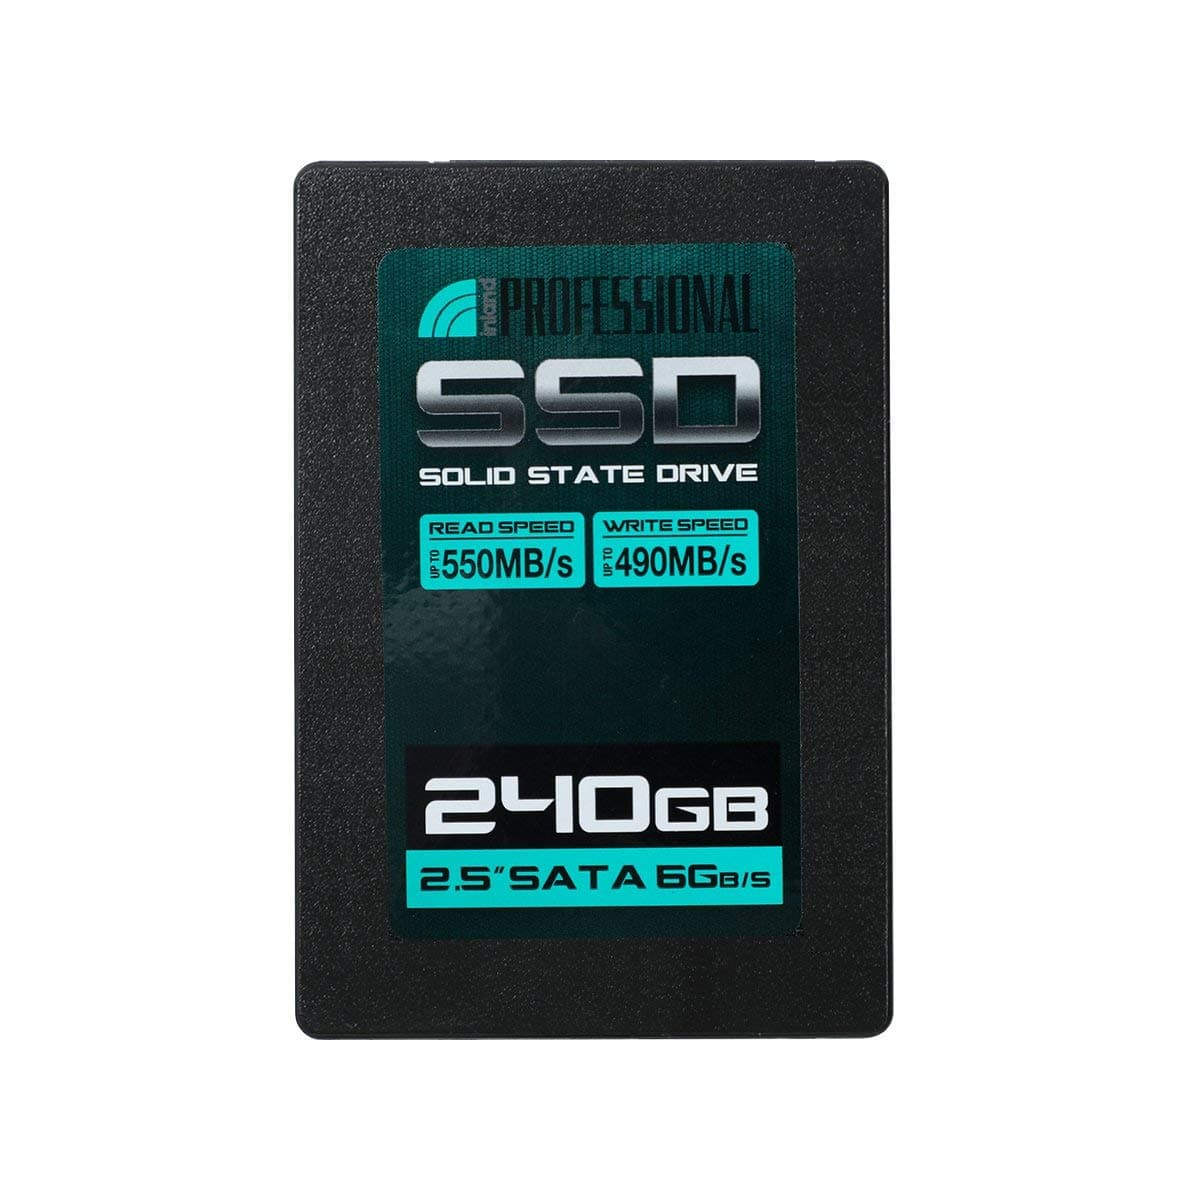 "Inland Professional 240GB SATA III 6Gb/s 2.5"" Internal SSD $42.99 Free Shipping @ Amazon"